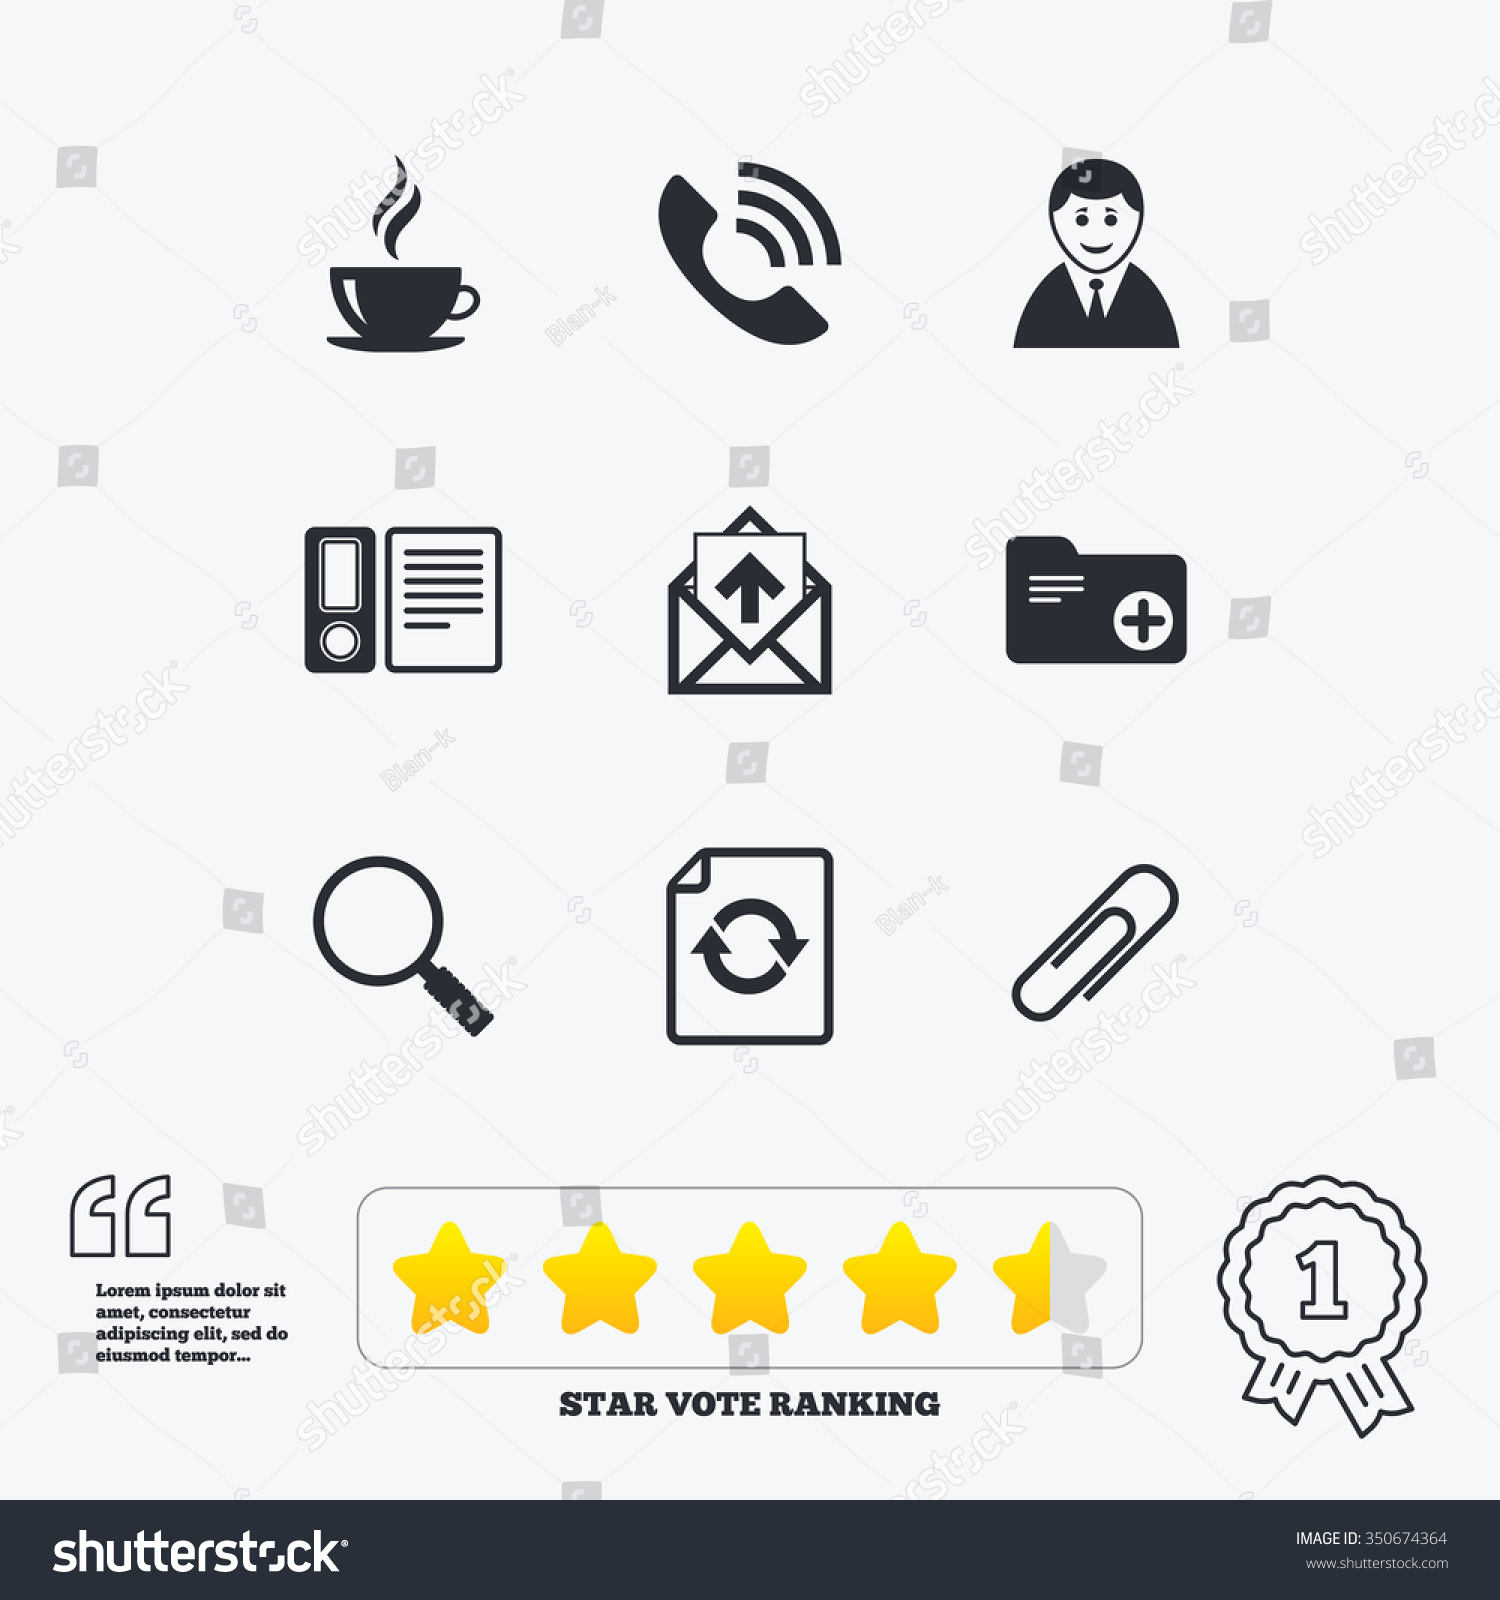 Phone Call Quotes Office Documents Business Icons Coffee Phone Stock Illustration